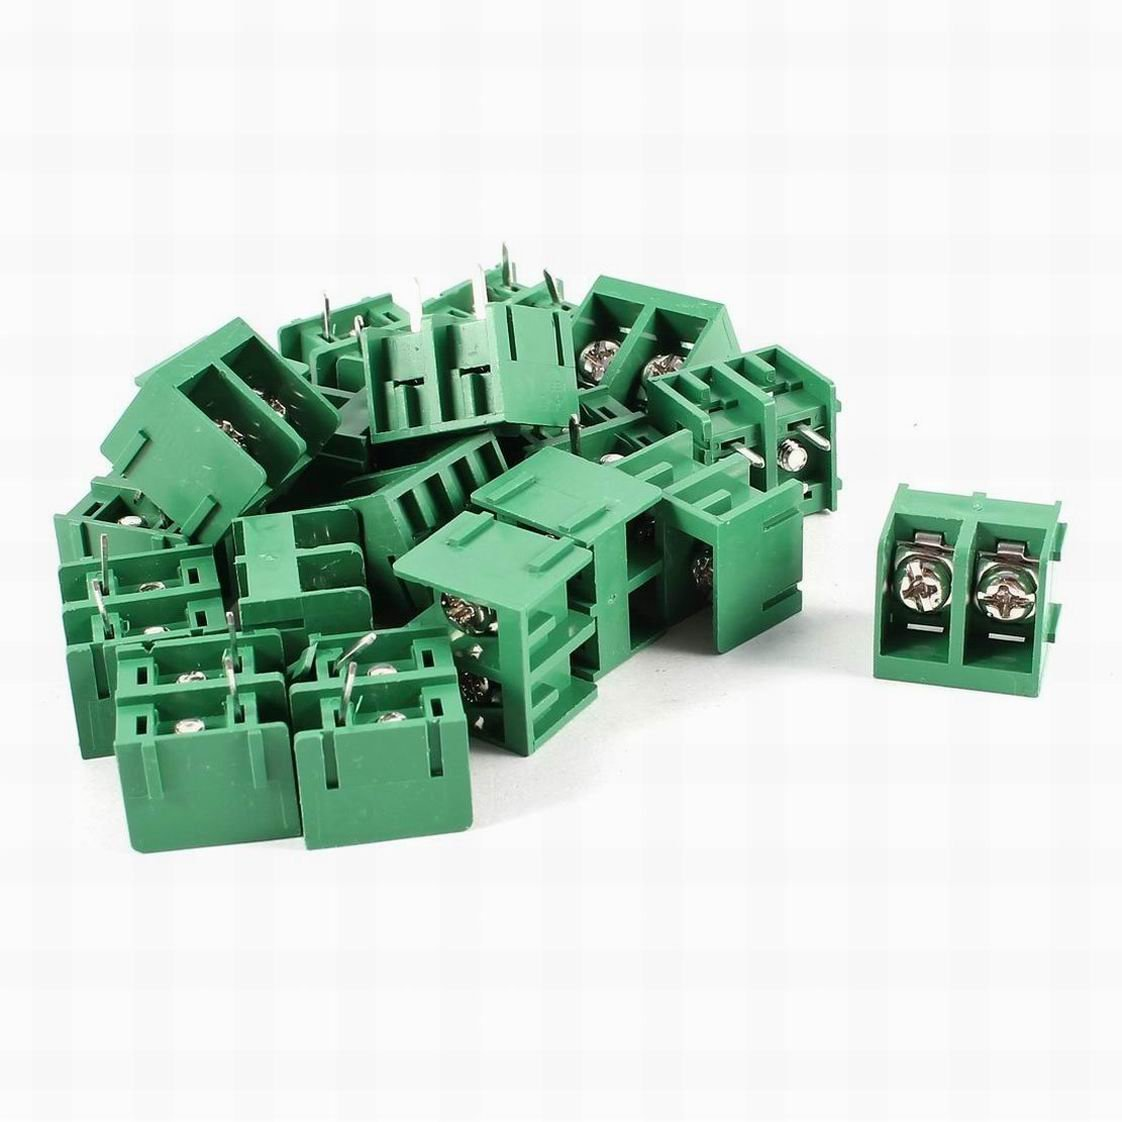 Houseuse 20 Pcs HB9500 2 Position 9.5mm Screw Terminal Barrier Blocks 300V 30A